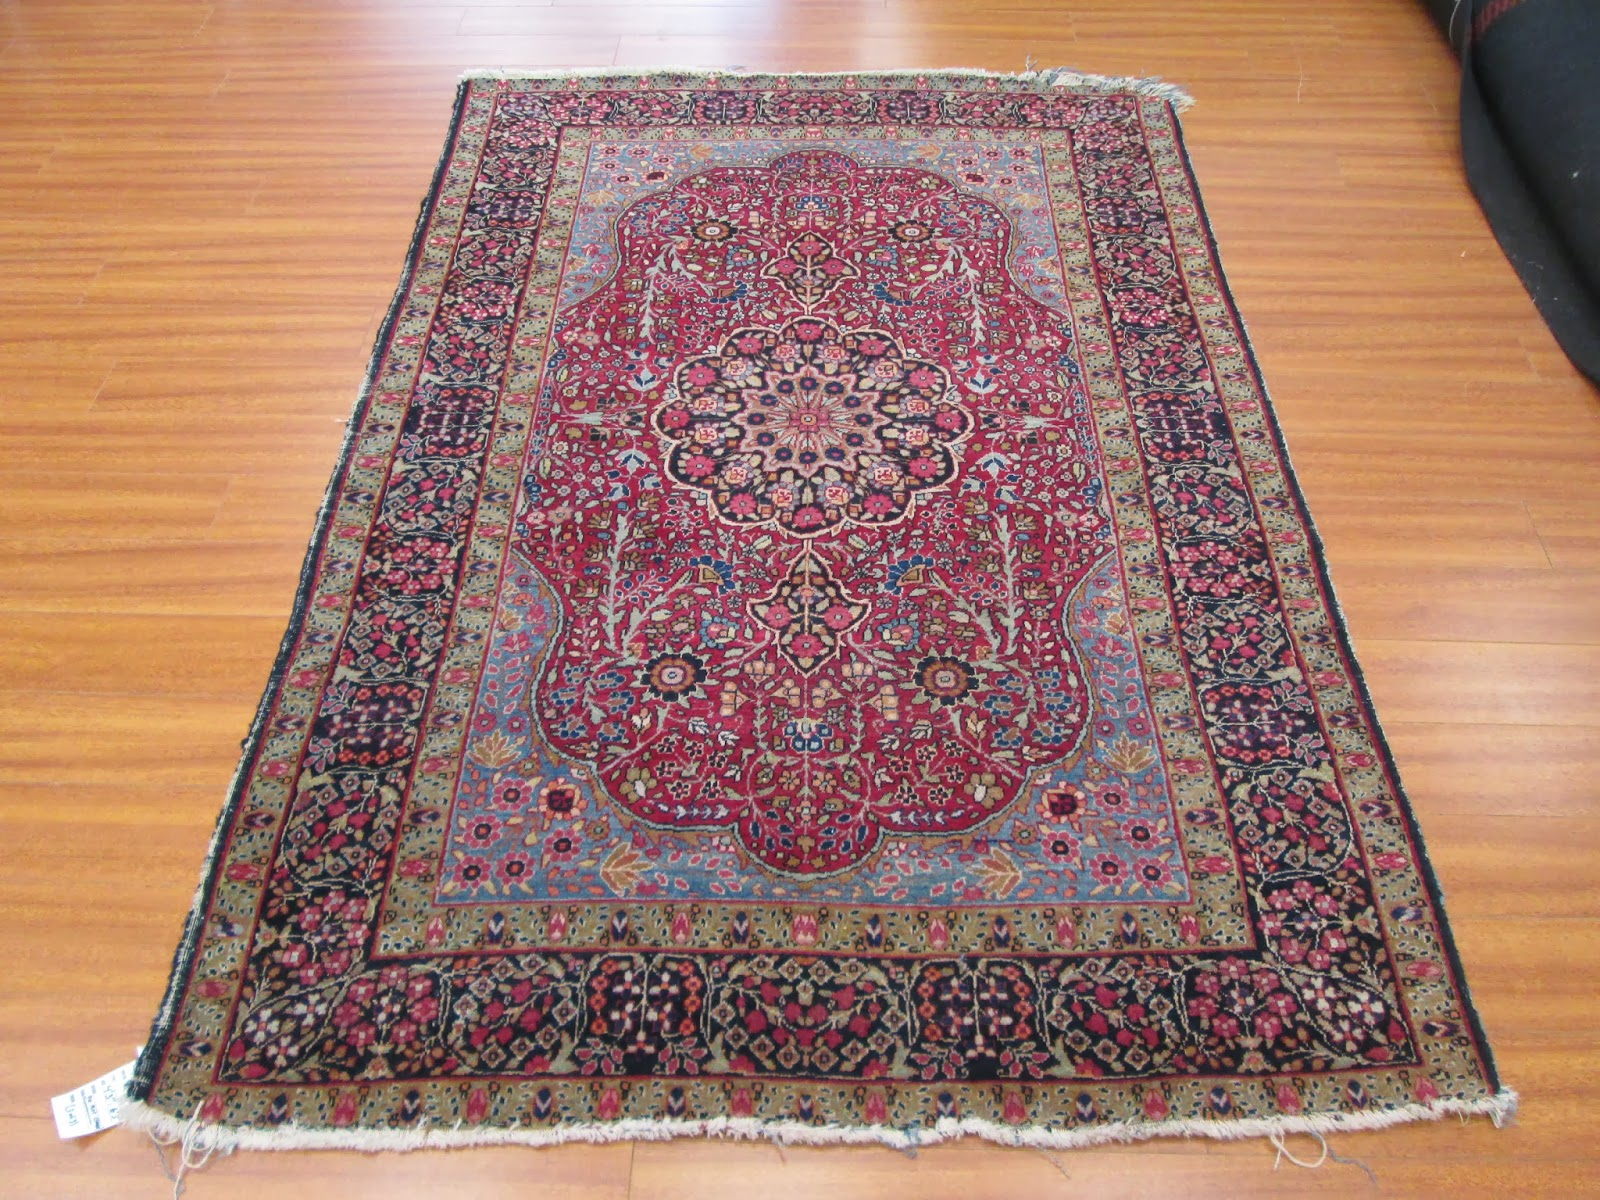 This Time We Received A Pair Of Hand Knotted Antique Persian Farahan Carpets Sent To Us By Very Reble Rug Collector From Miami Florida